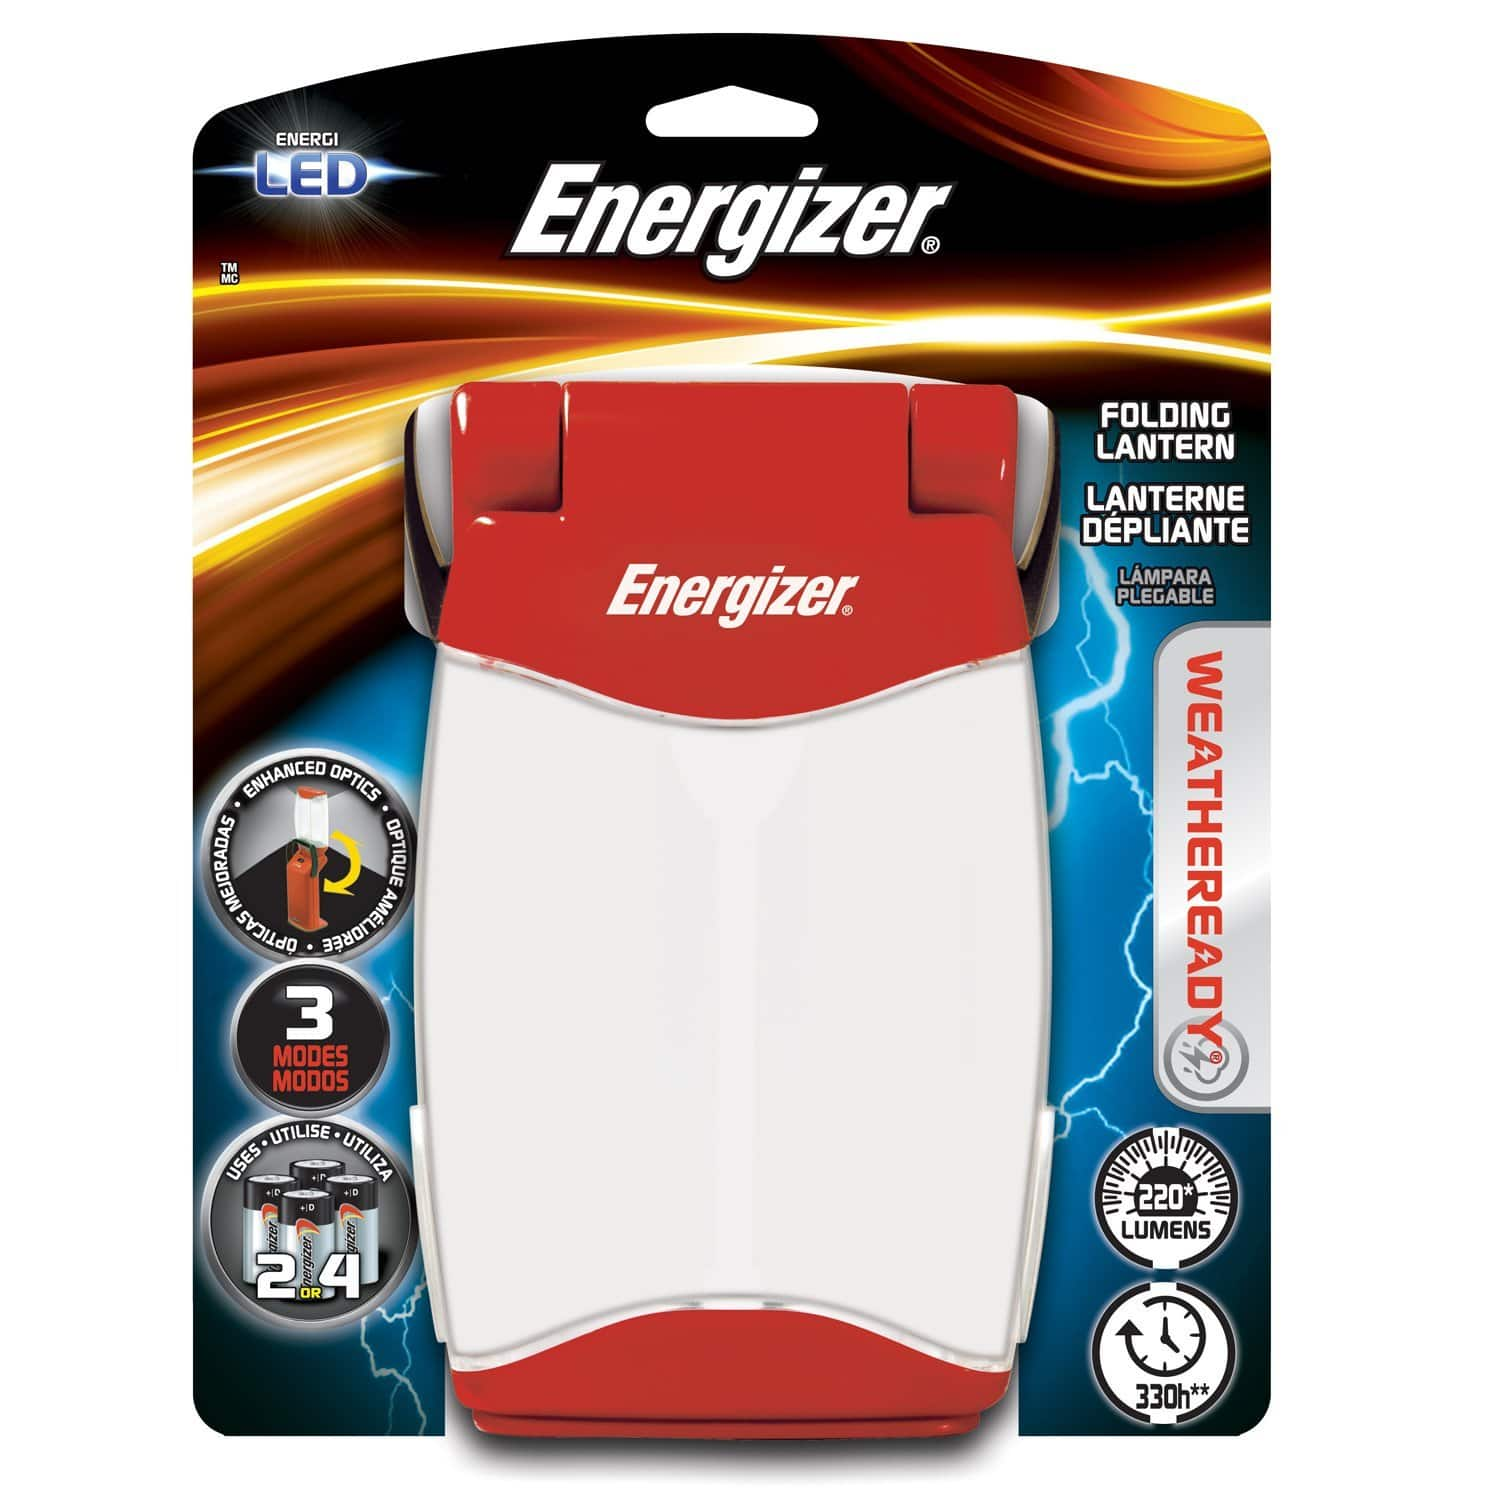 Energizer Weatheready Folding Lantern- $14.99